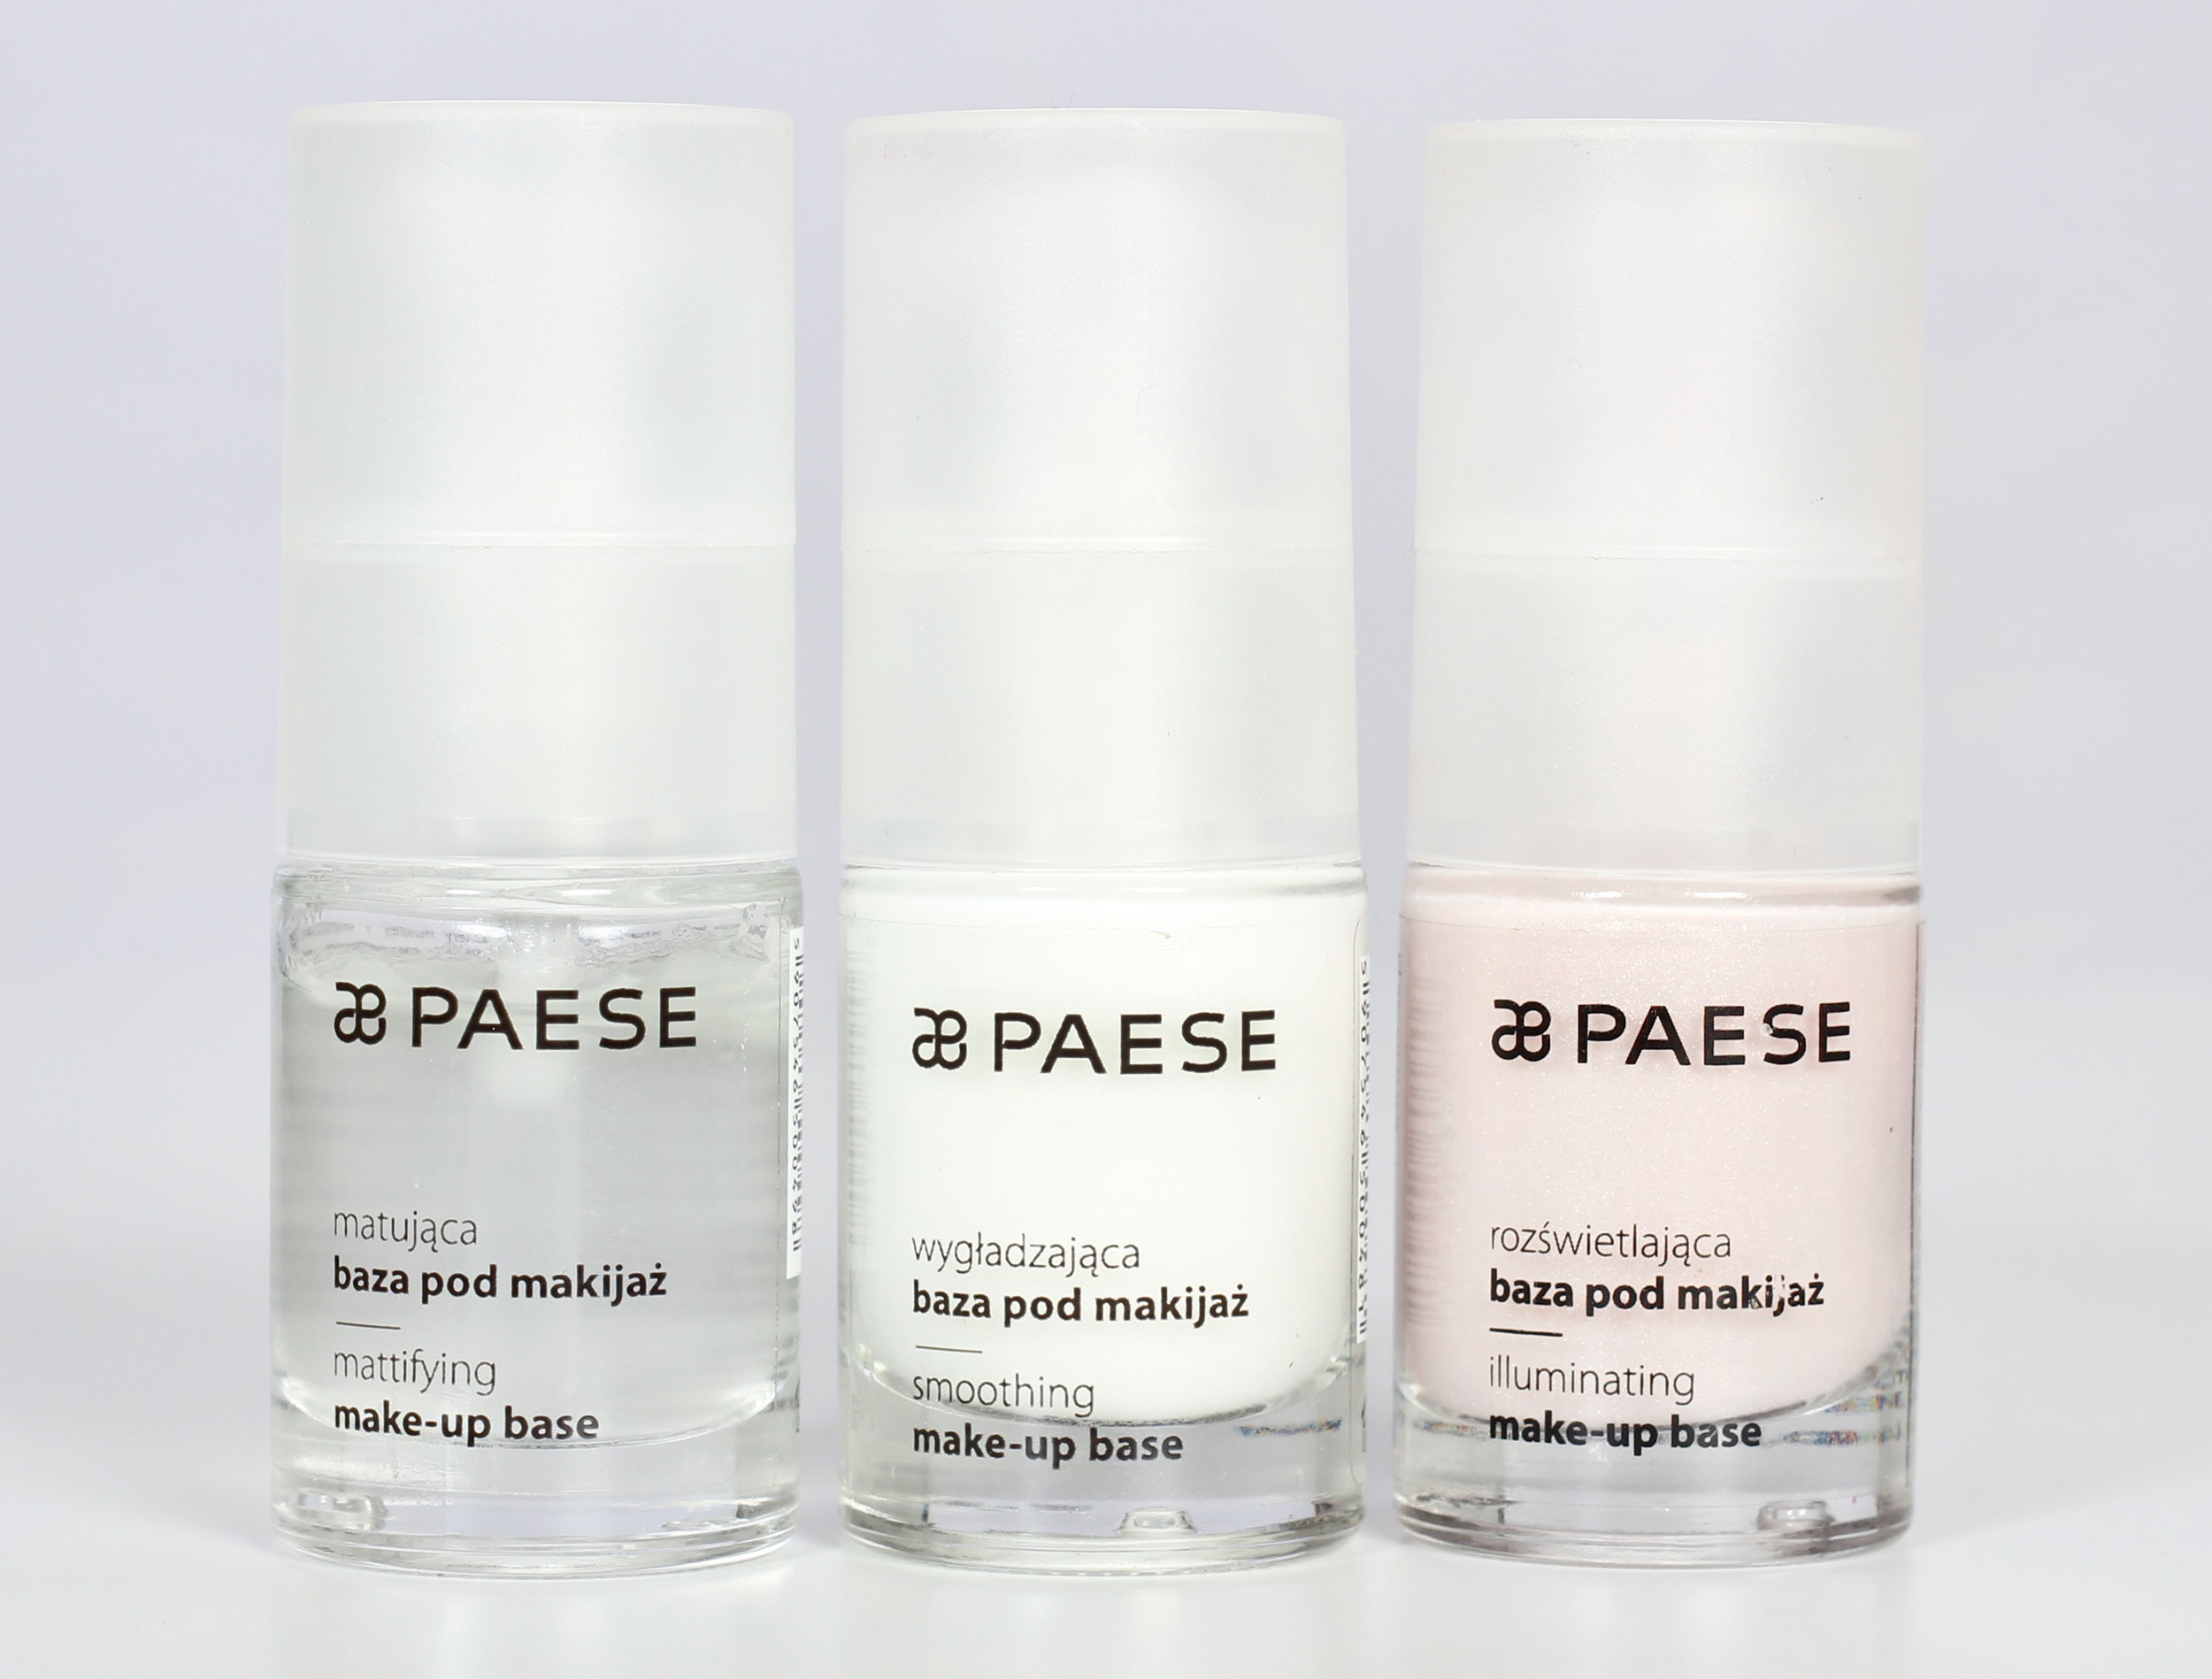 Best-selling face primer!